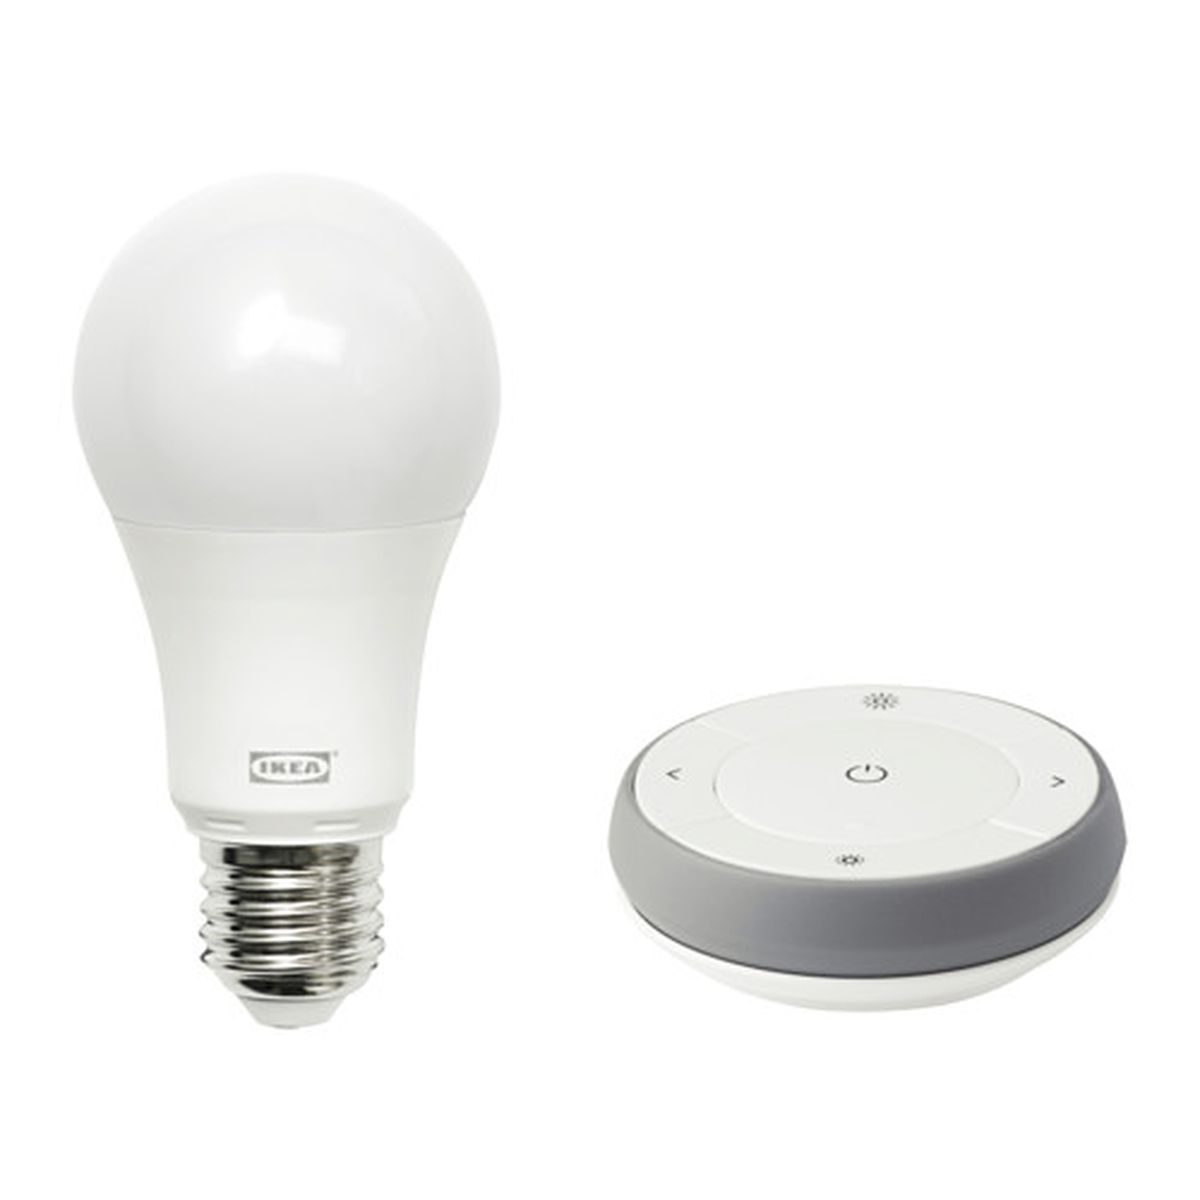 Hue Light Bulb Philips Ikea's Multi-color Smart Bulbs Are Now Widely Available